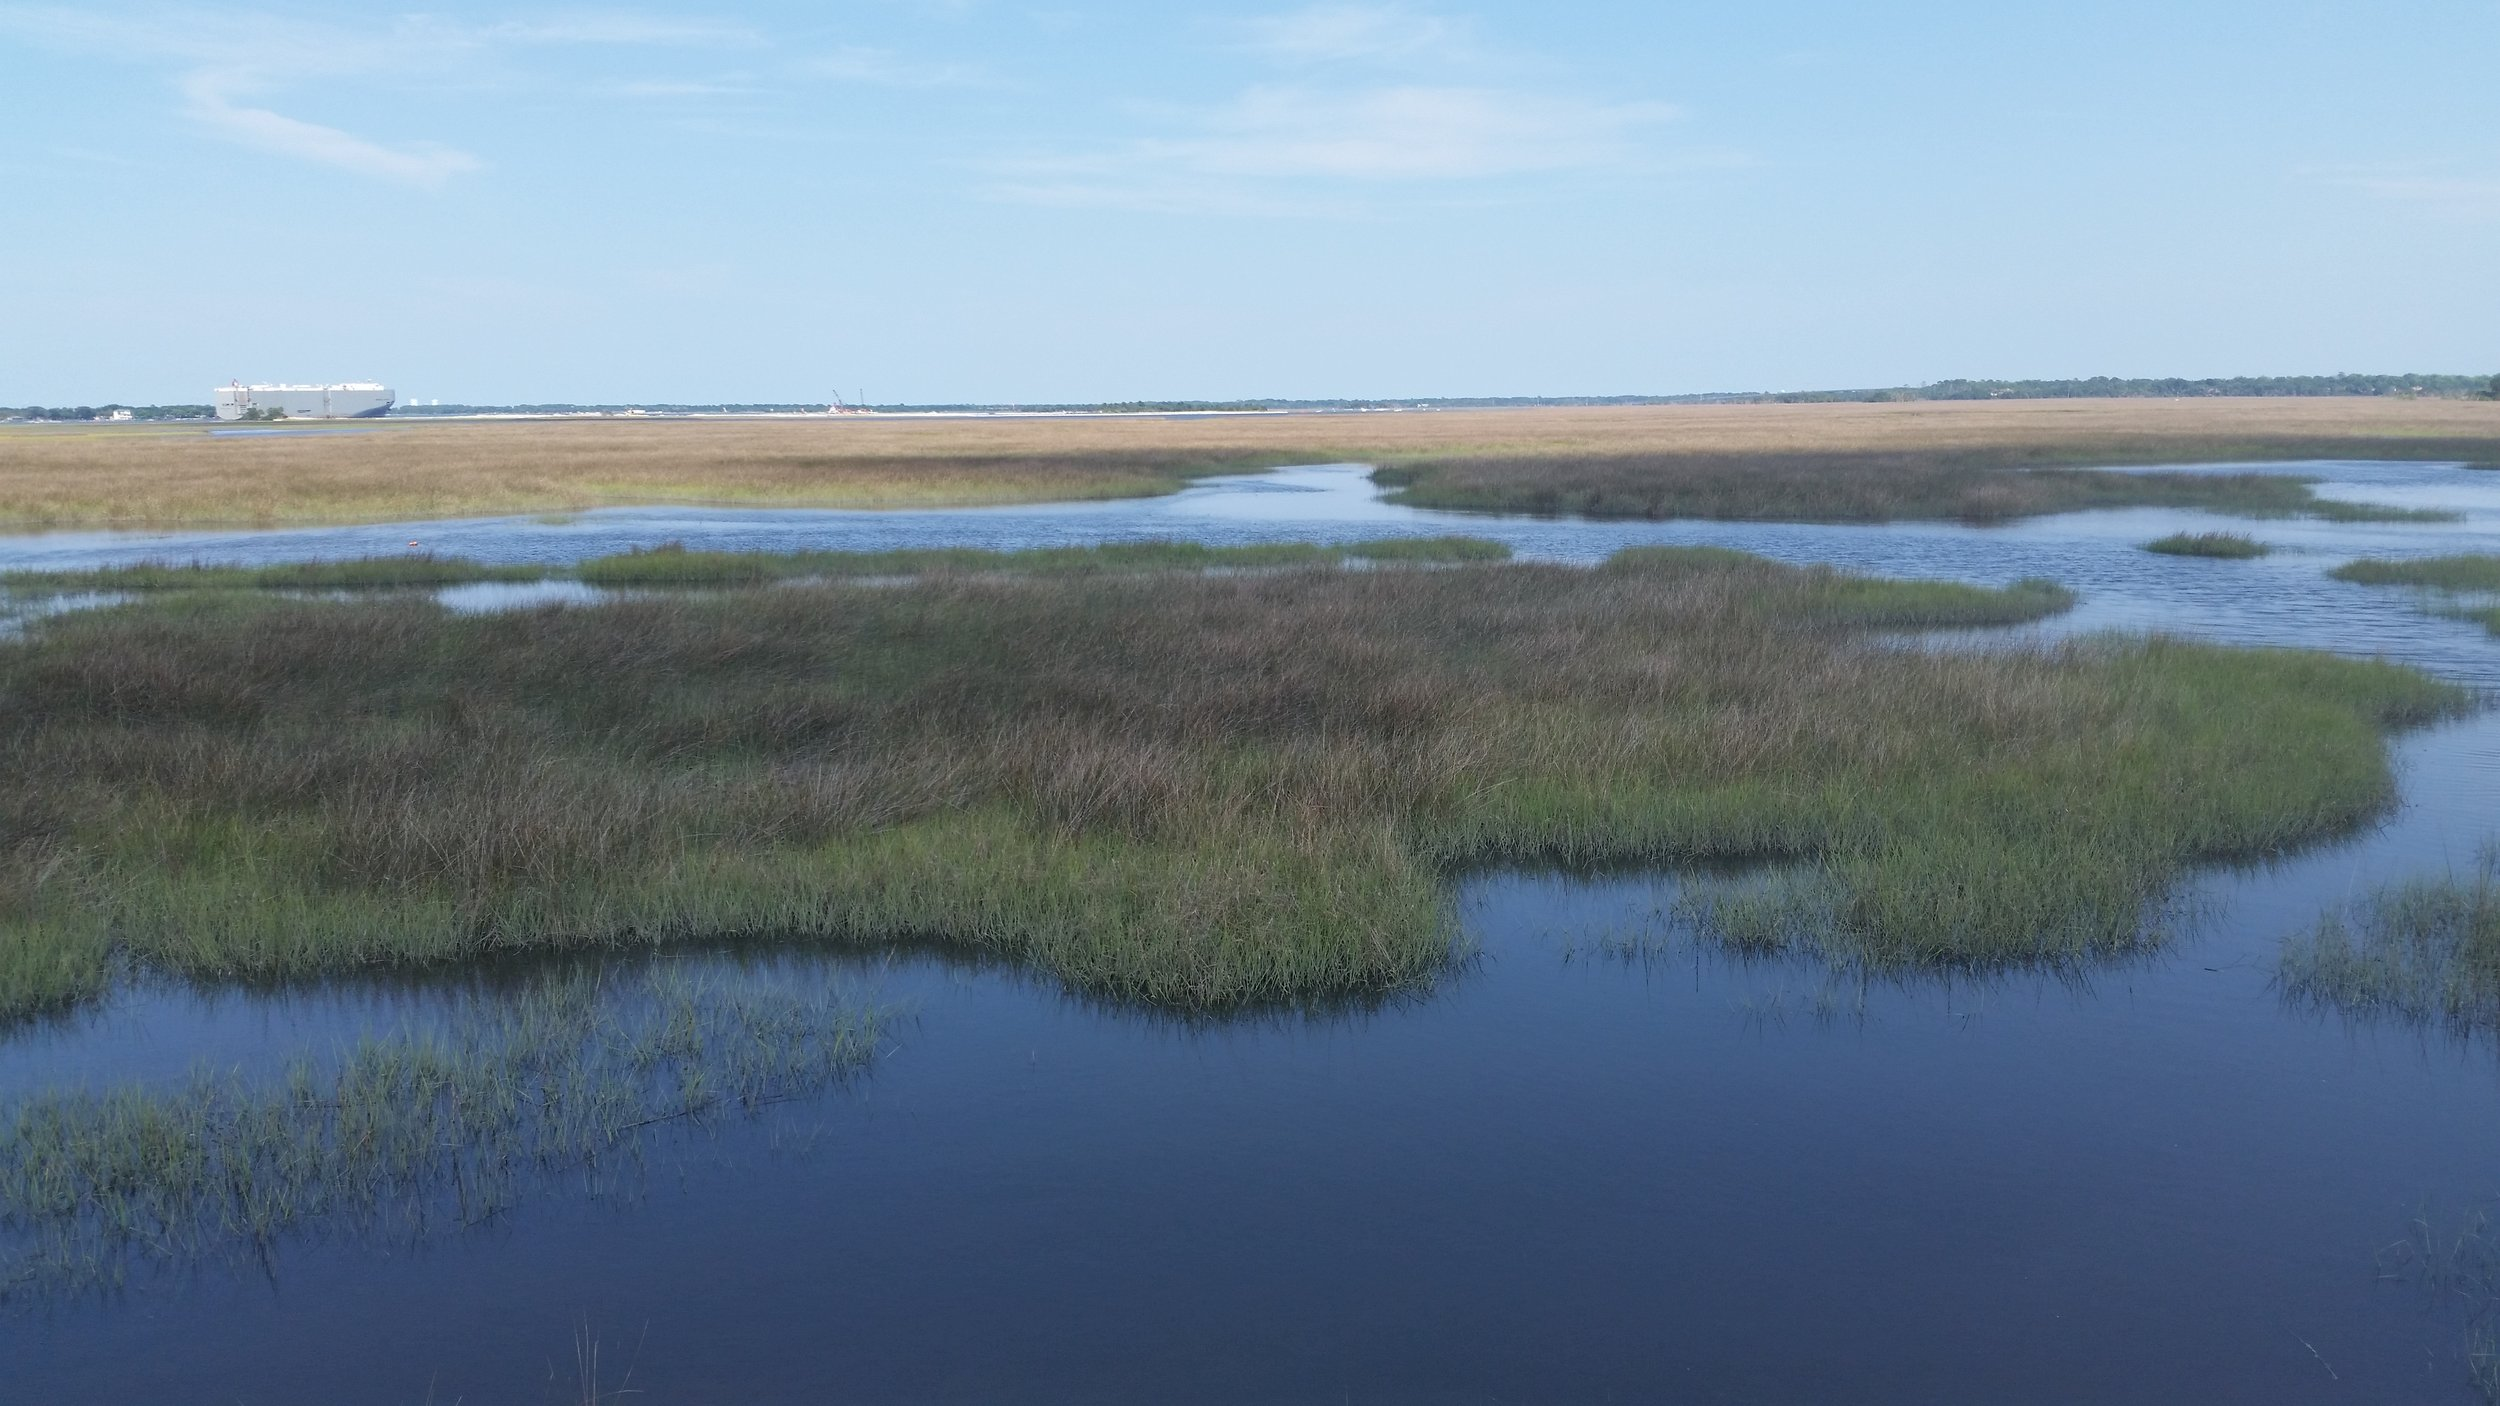 I love the flow of water and marsh grasses in Jacksonville's coastal wetland areas. I can't wait to paint some of these!